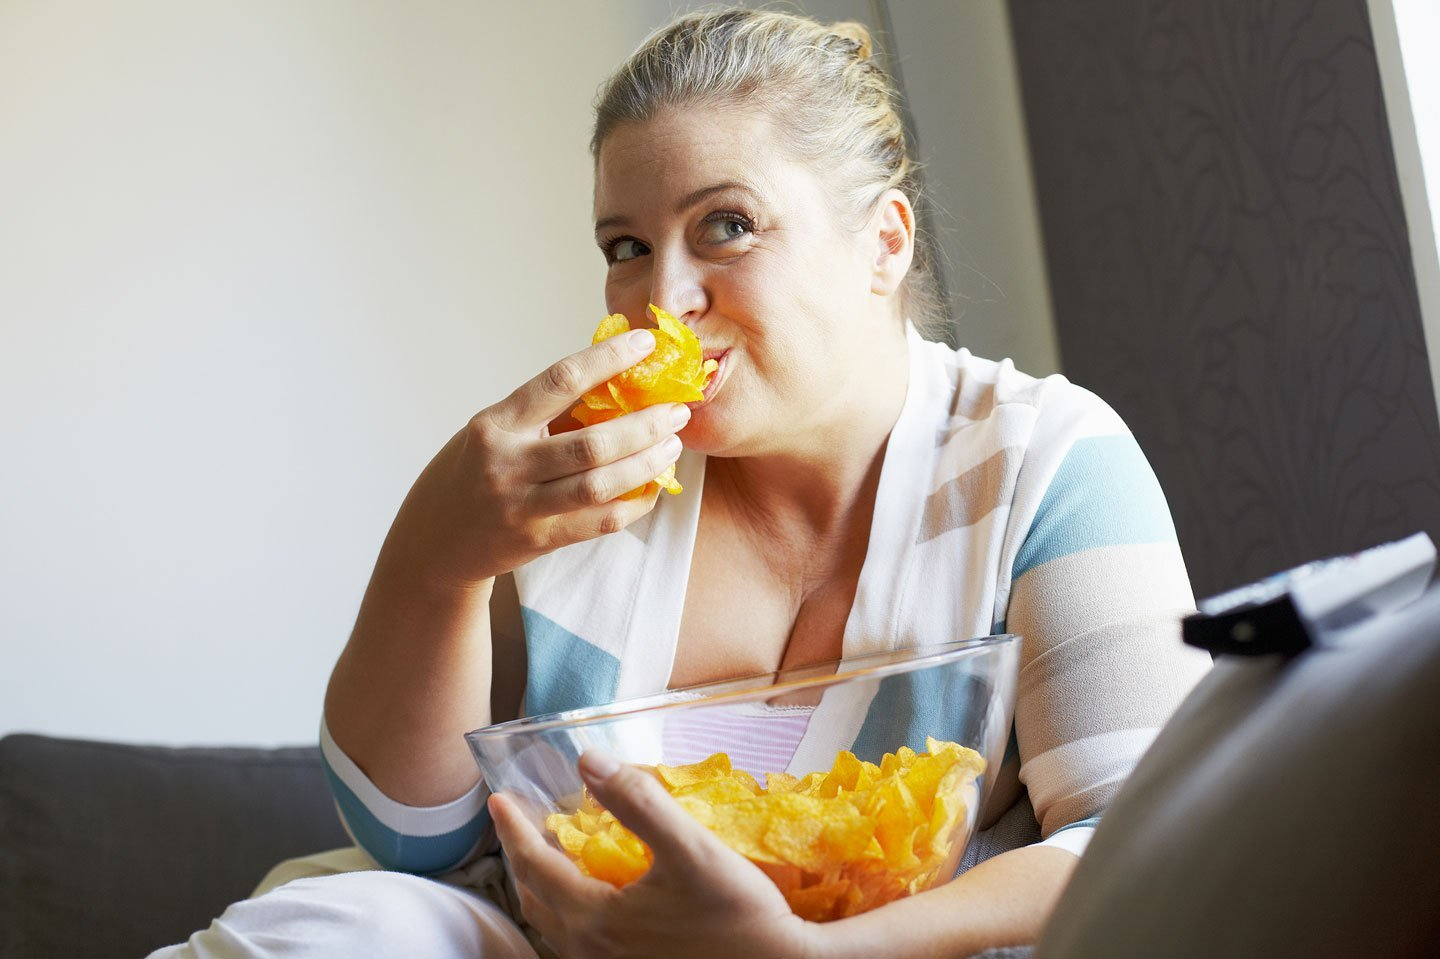 La fame emotiva - emotional eating